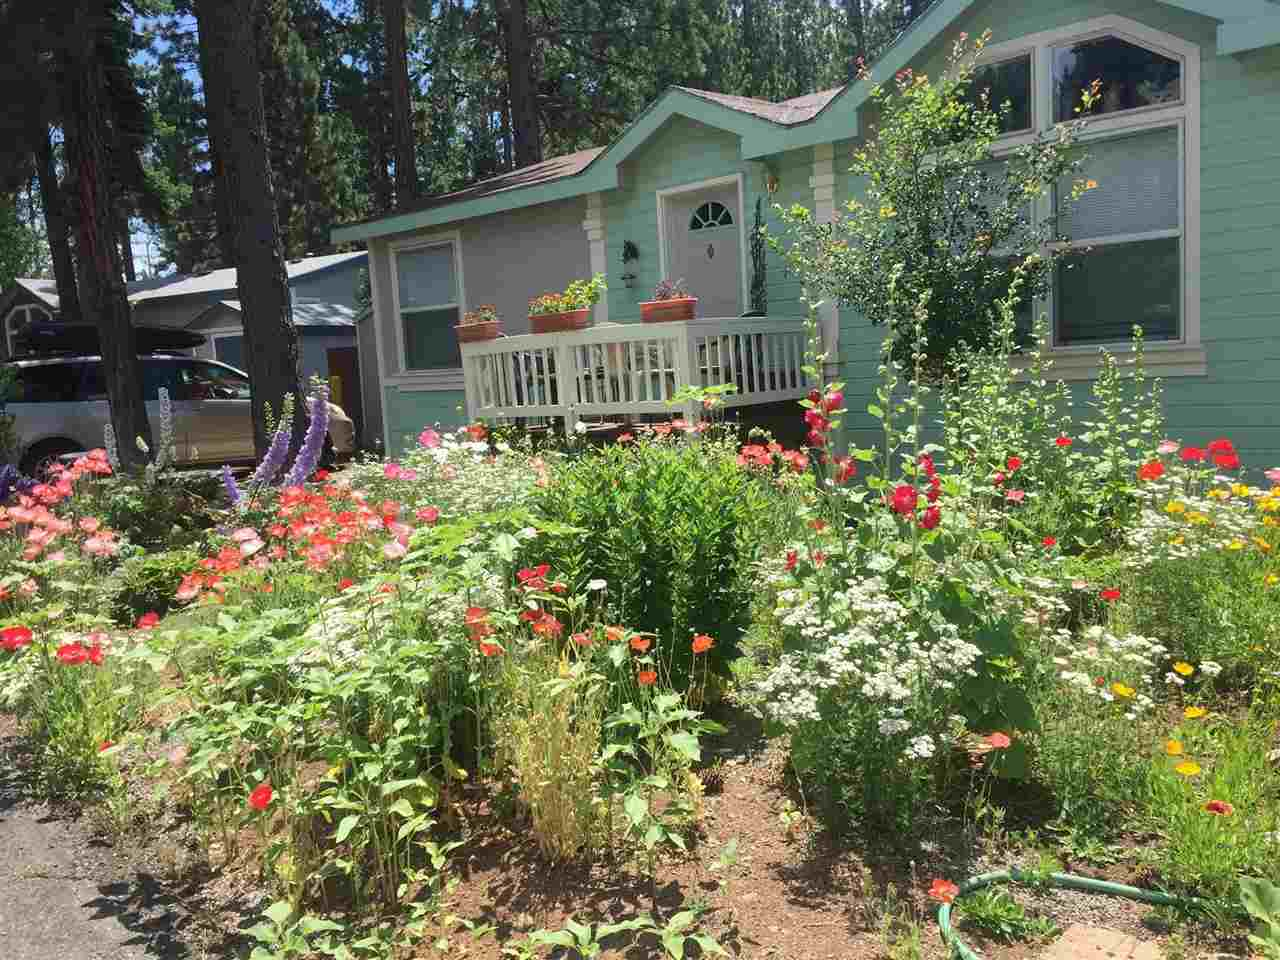 Mobile Home, Other - Truckee, CA (photo 1)